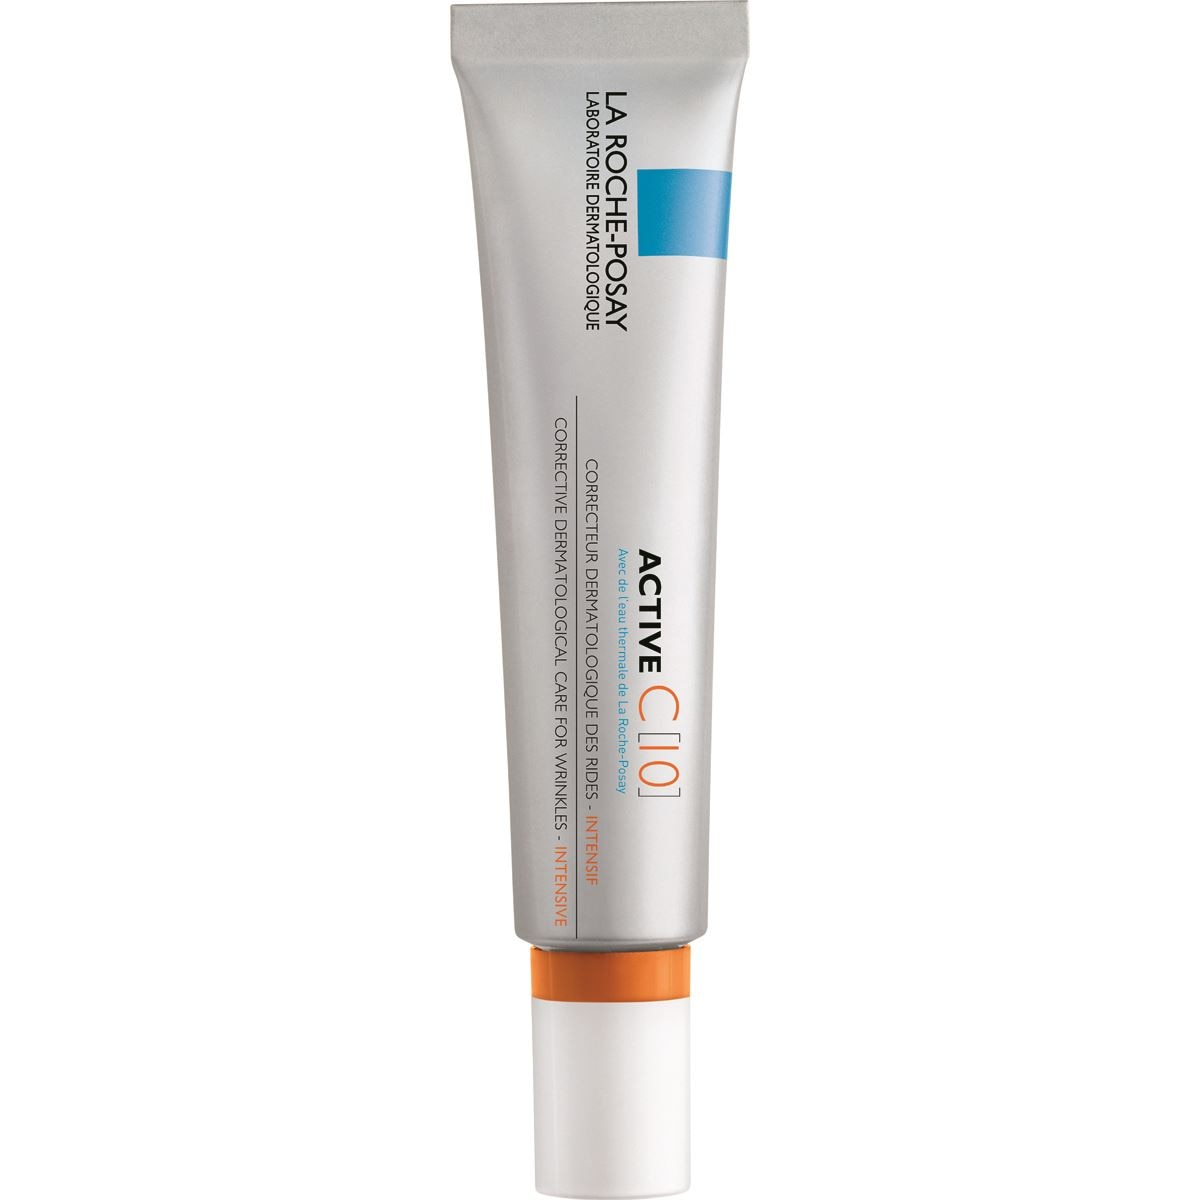 La Roche-Posay Active C 10 30ml